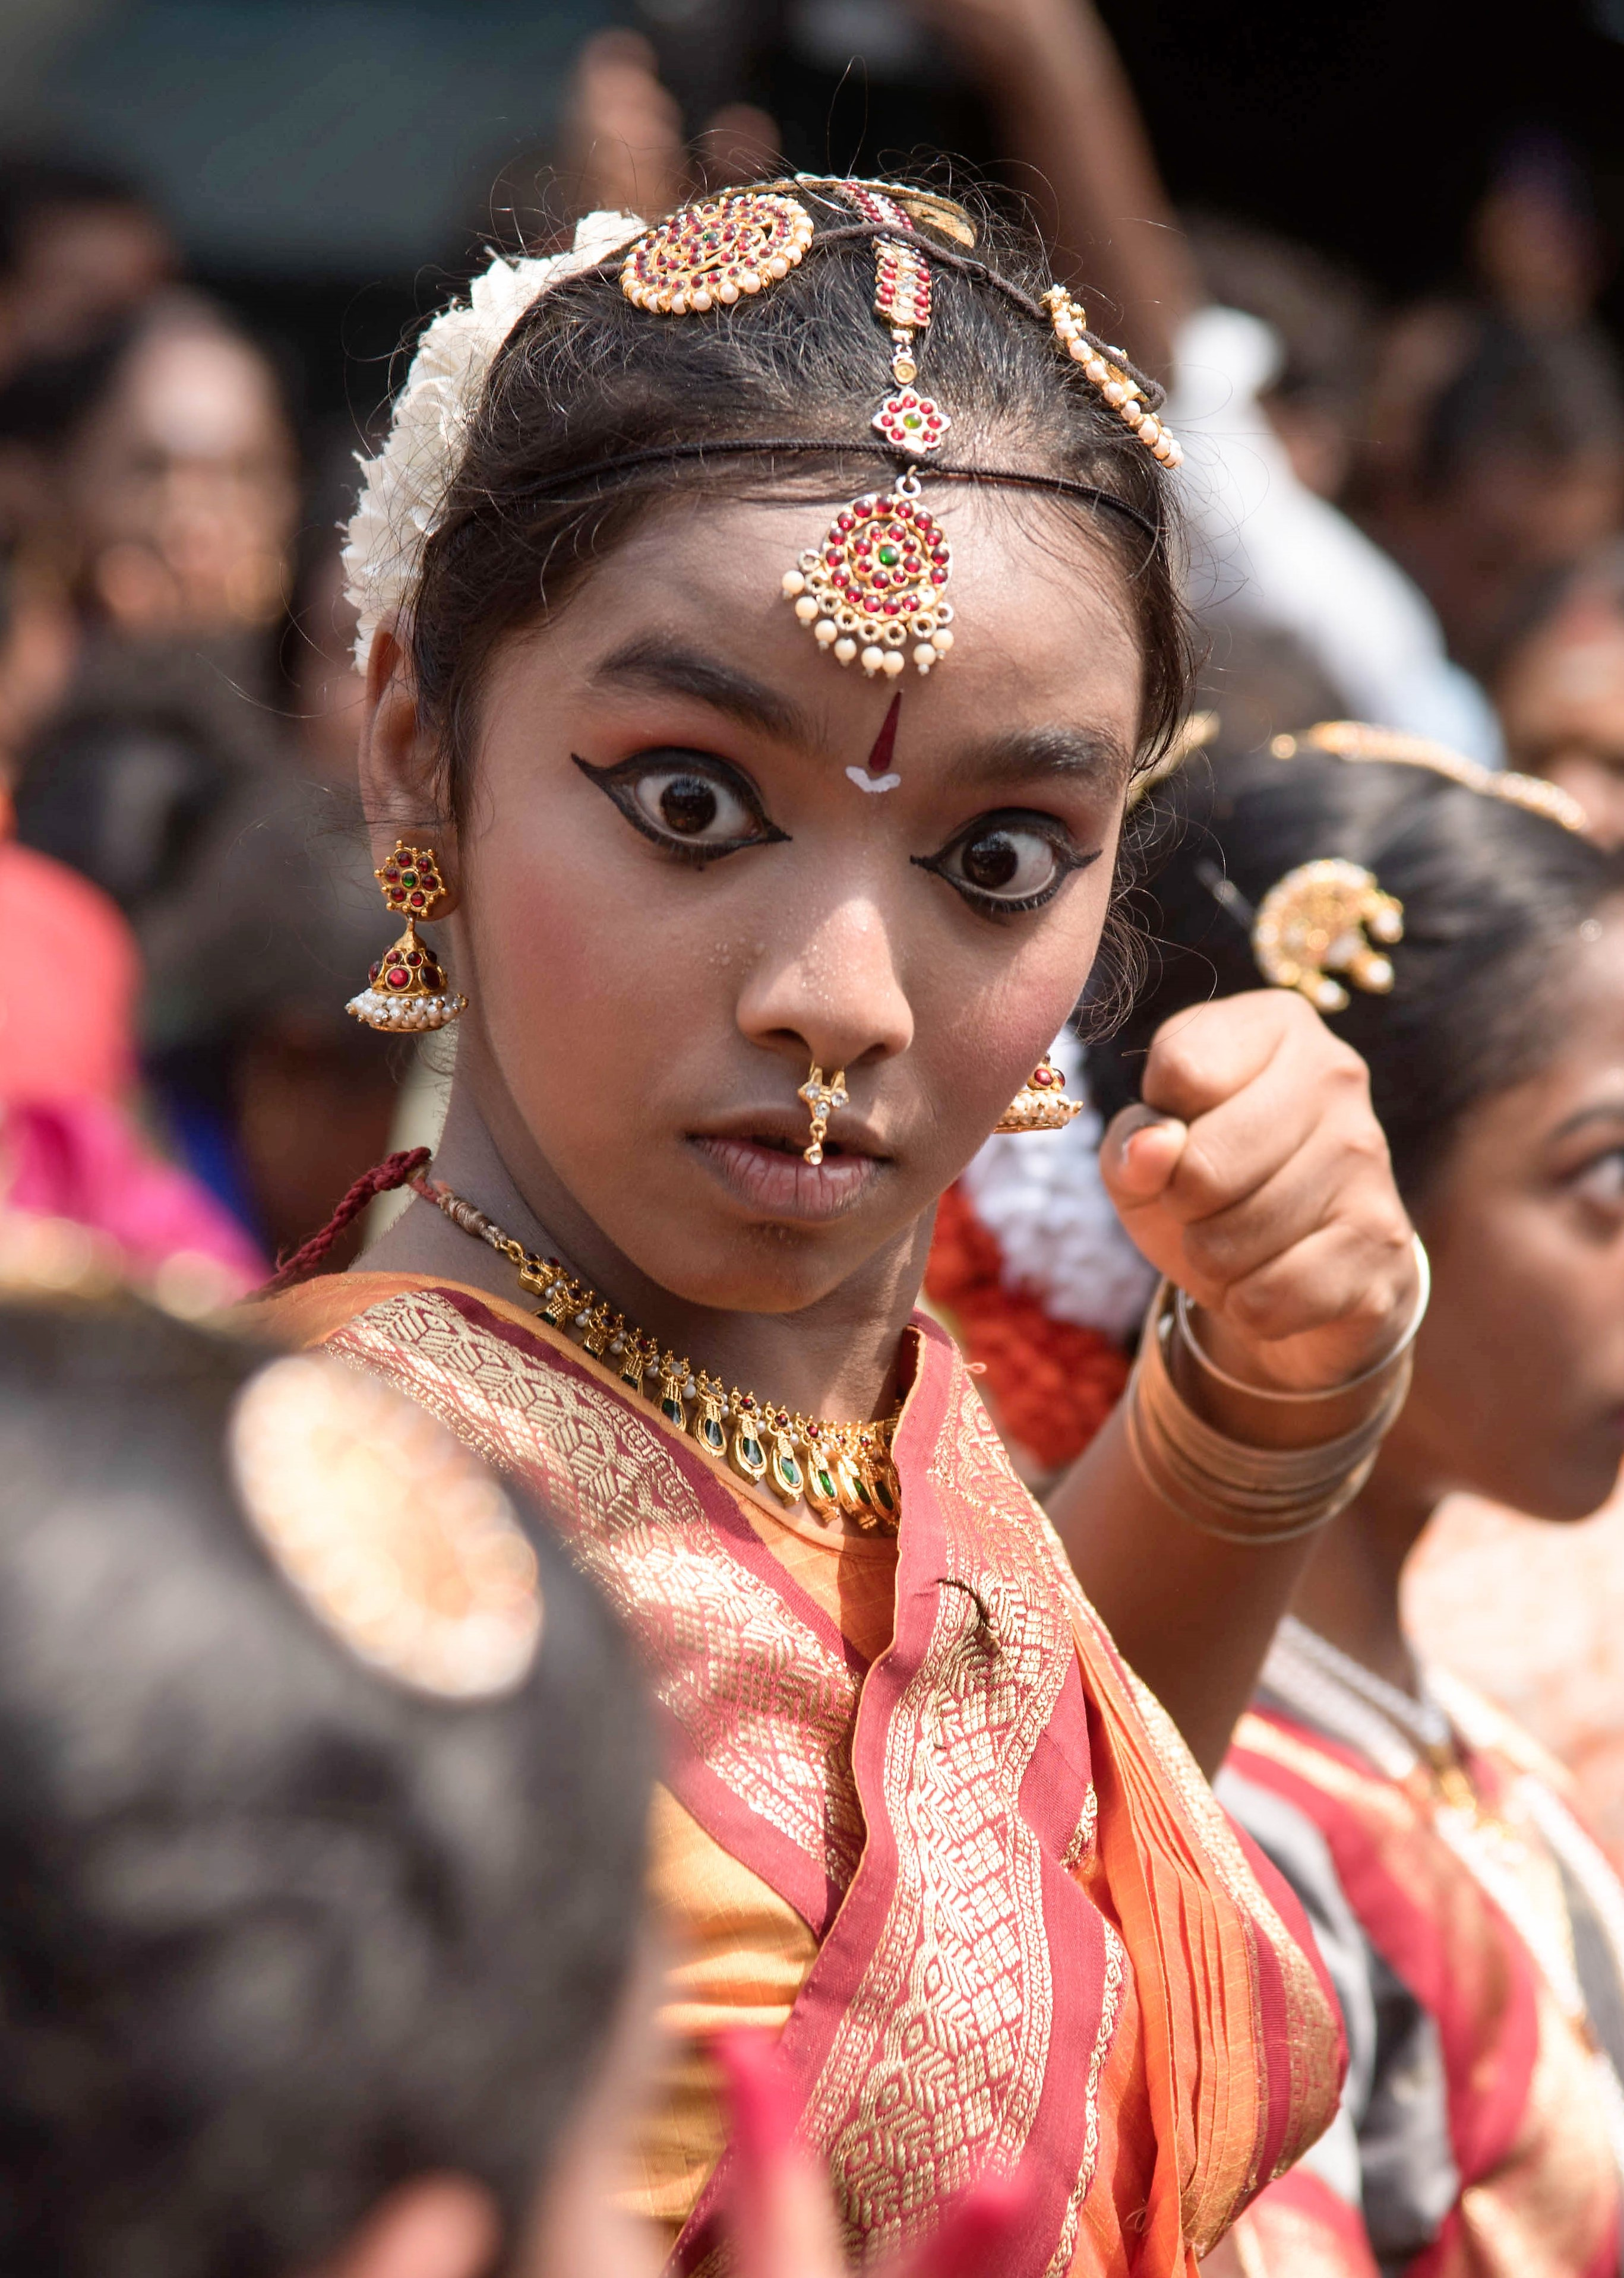 An angry dancer in Kapali Festival